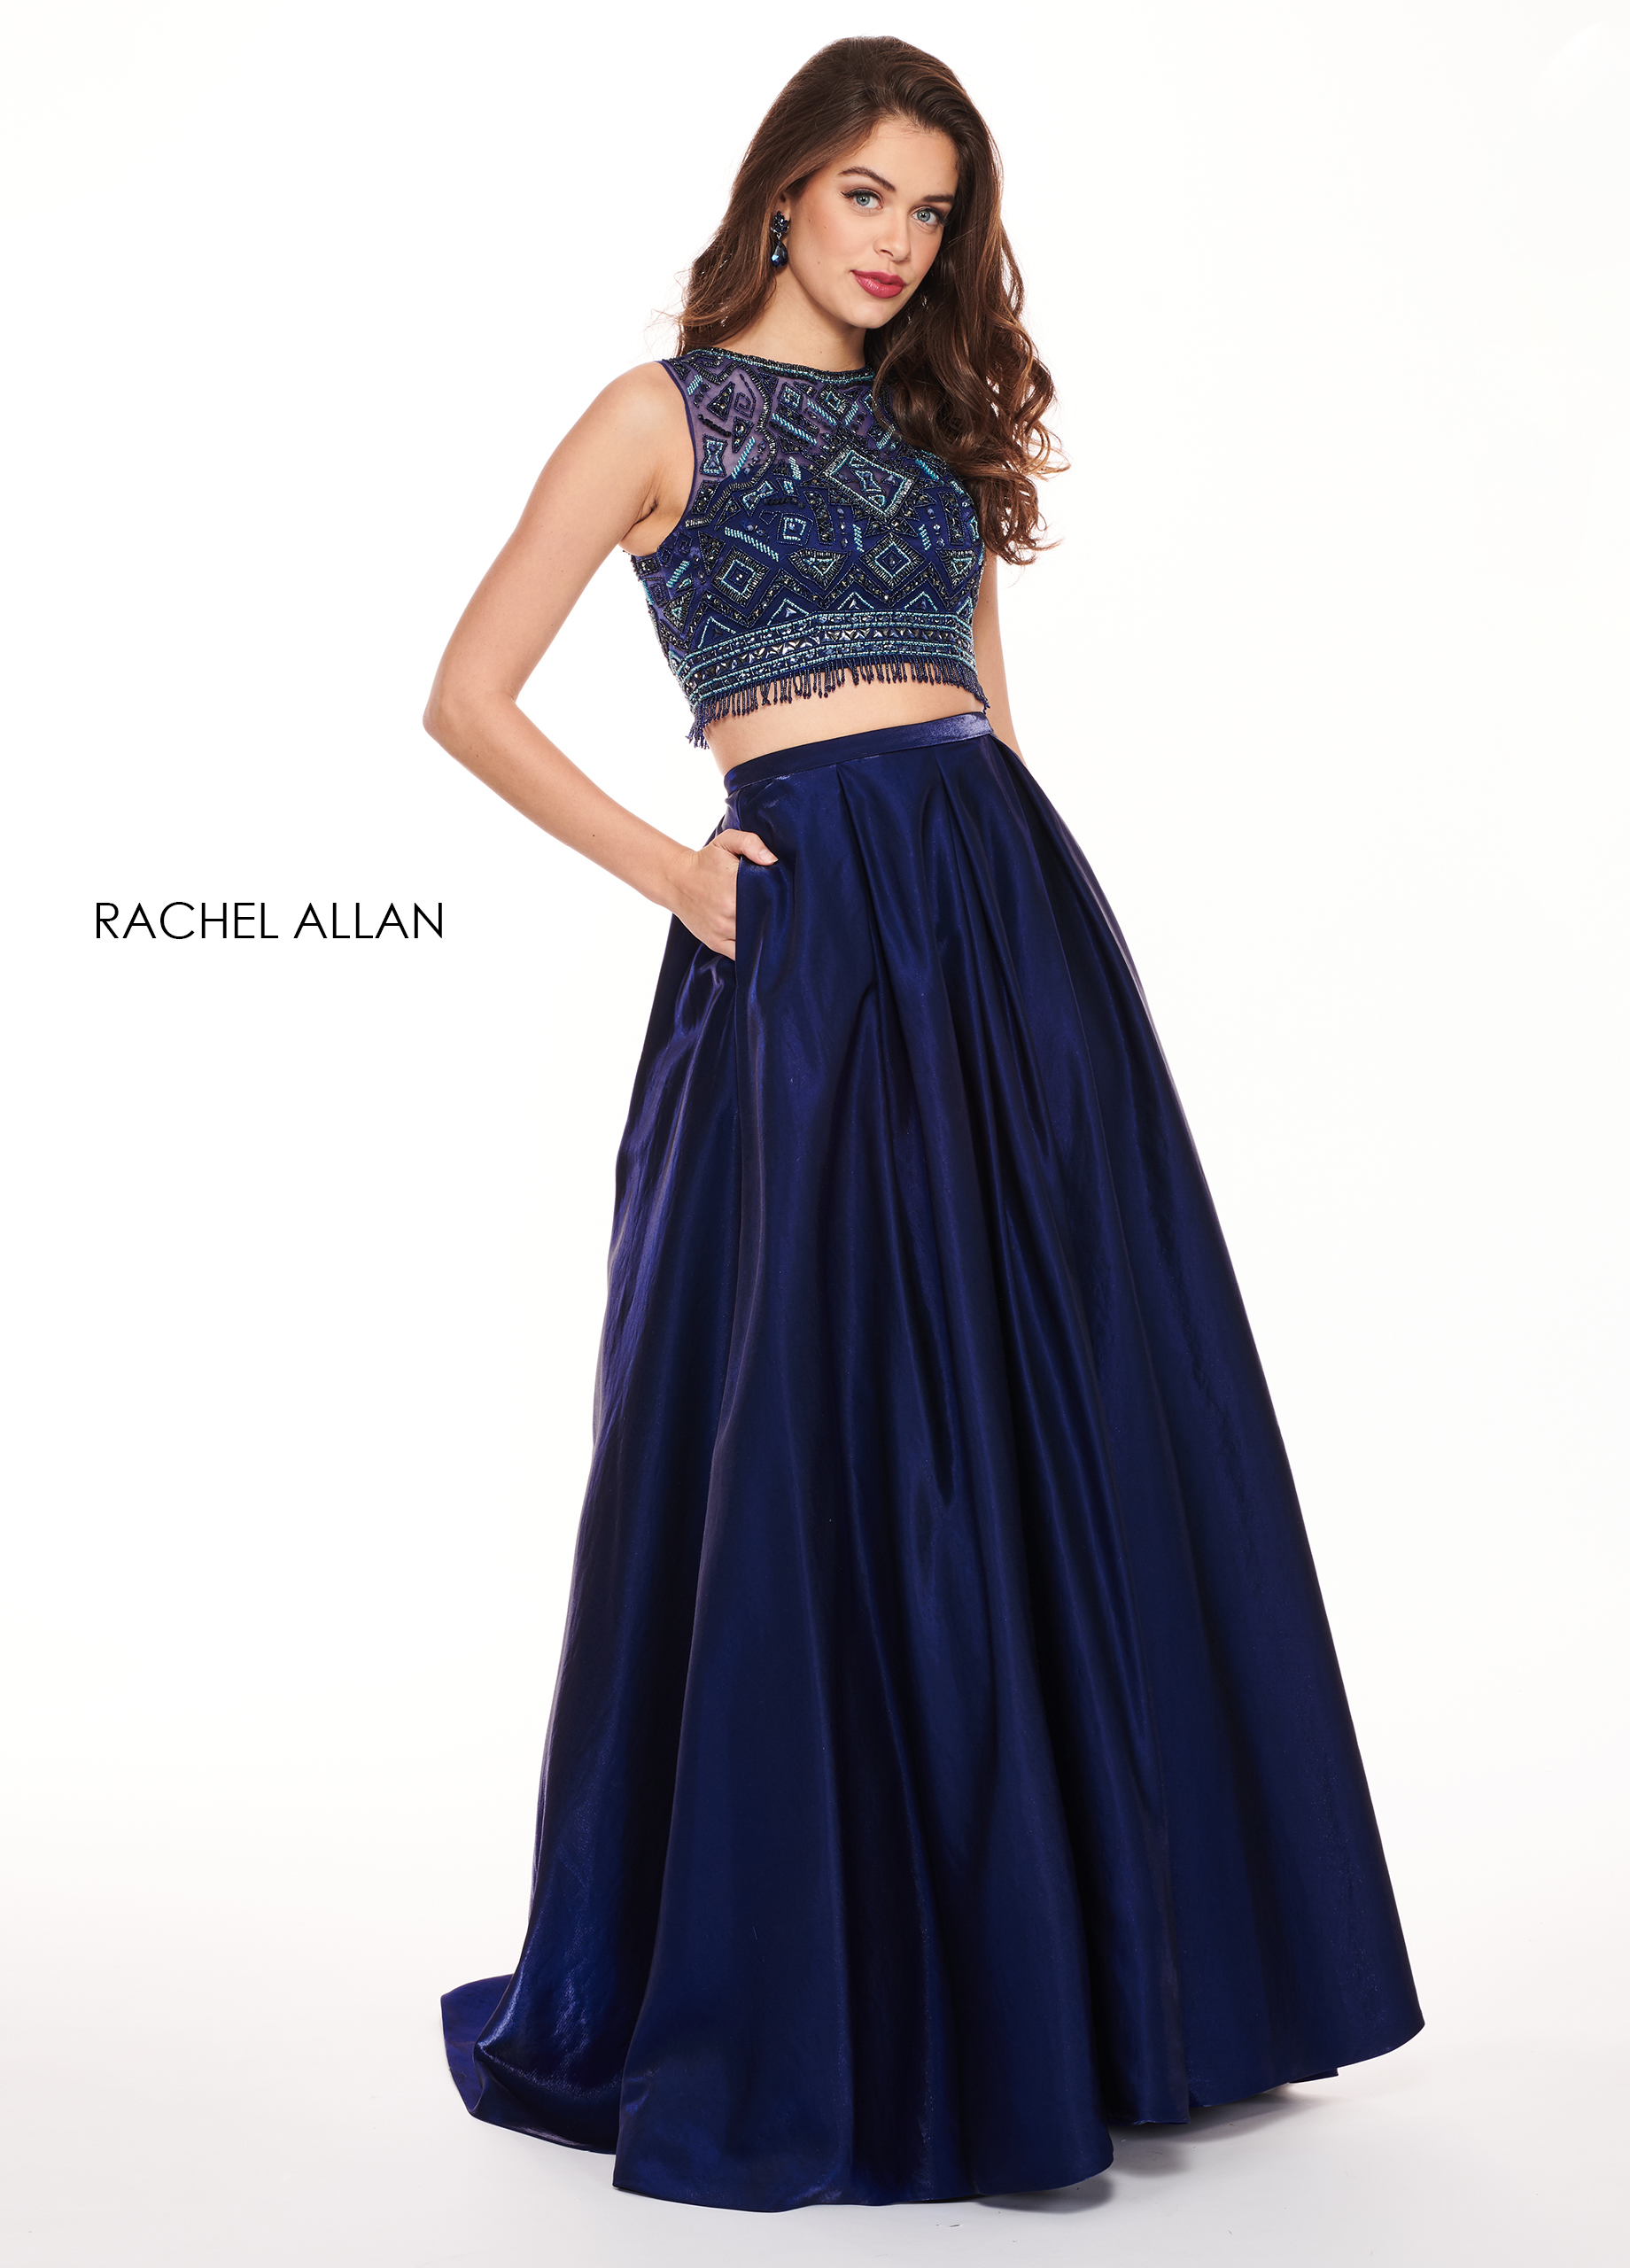 Scoop Neck Two-Piece Prom Dresses in Navy Color